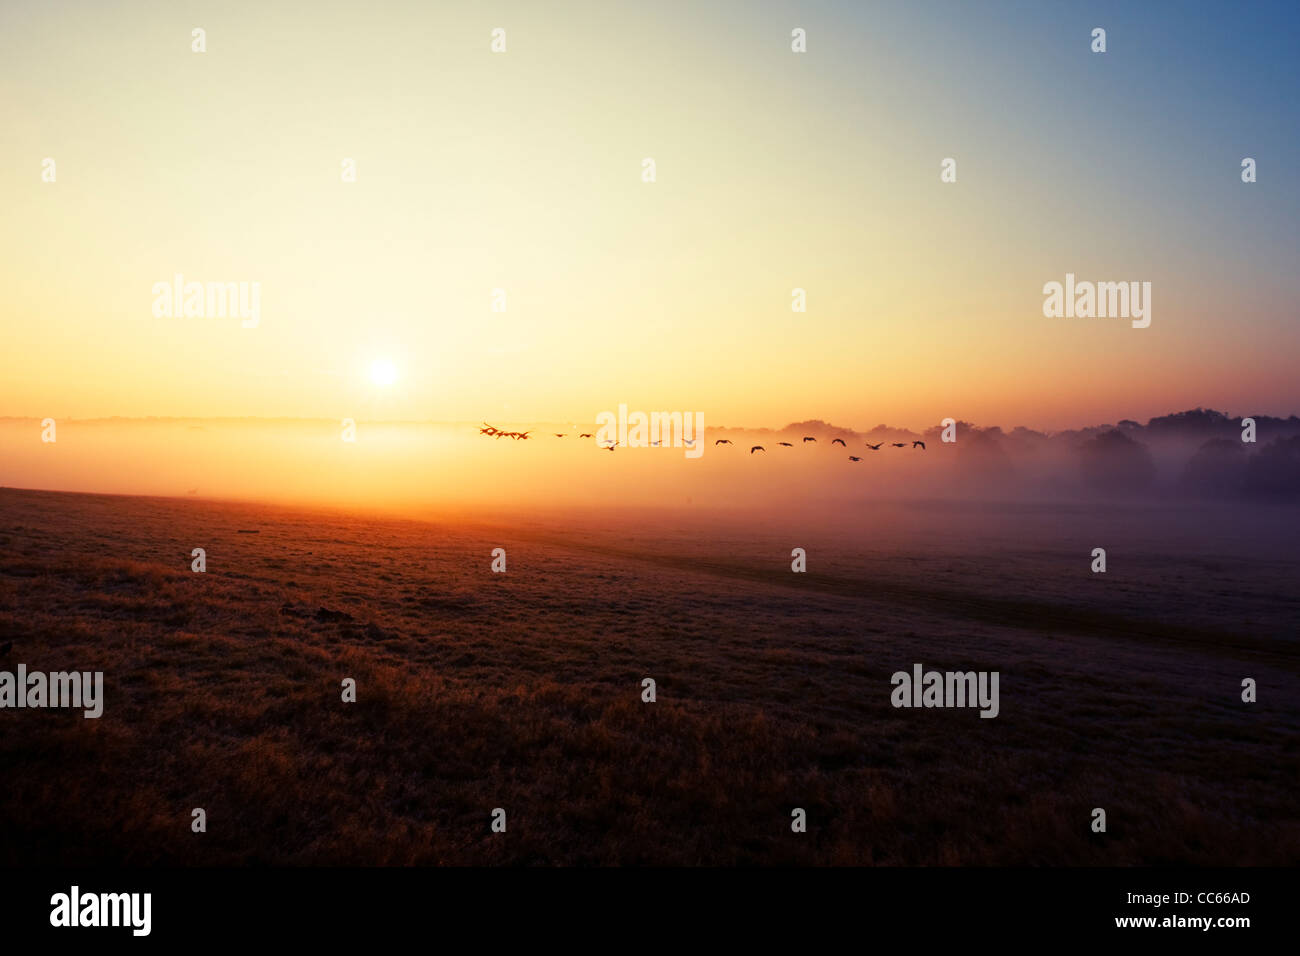 Flock of wild ducks flying in the sunrise. Richmond Park, London, England, UK. Stock Photo